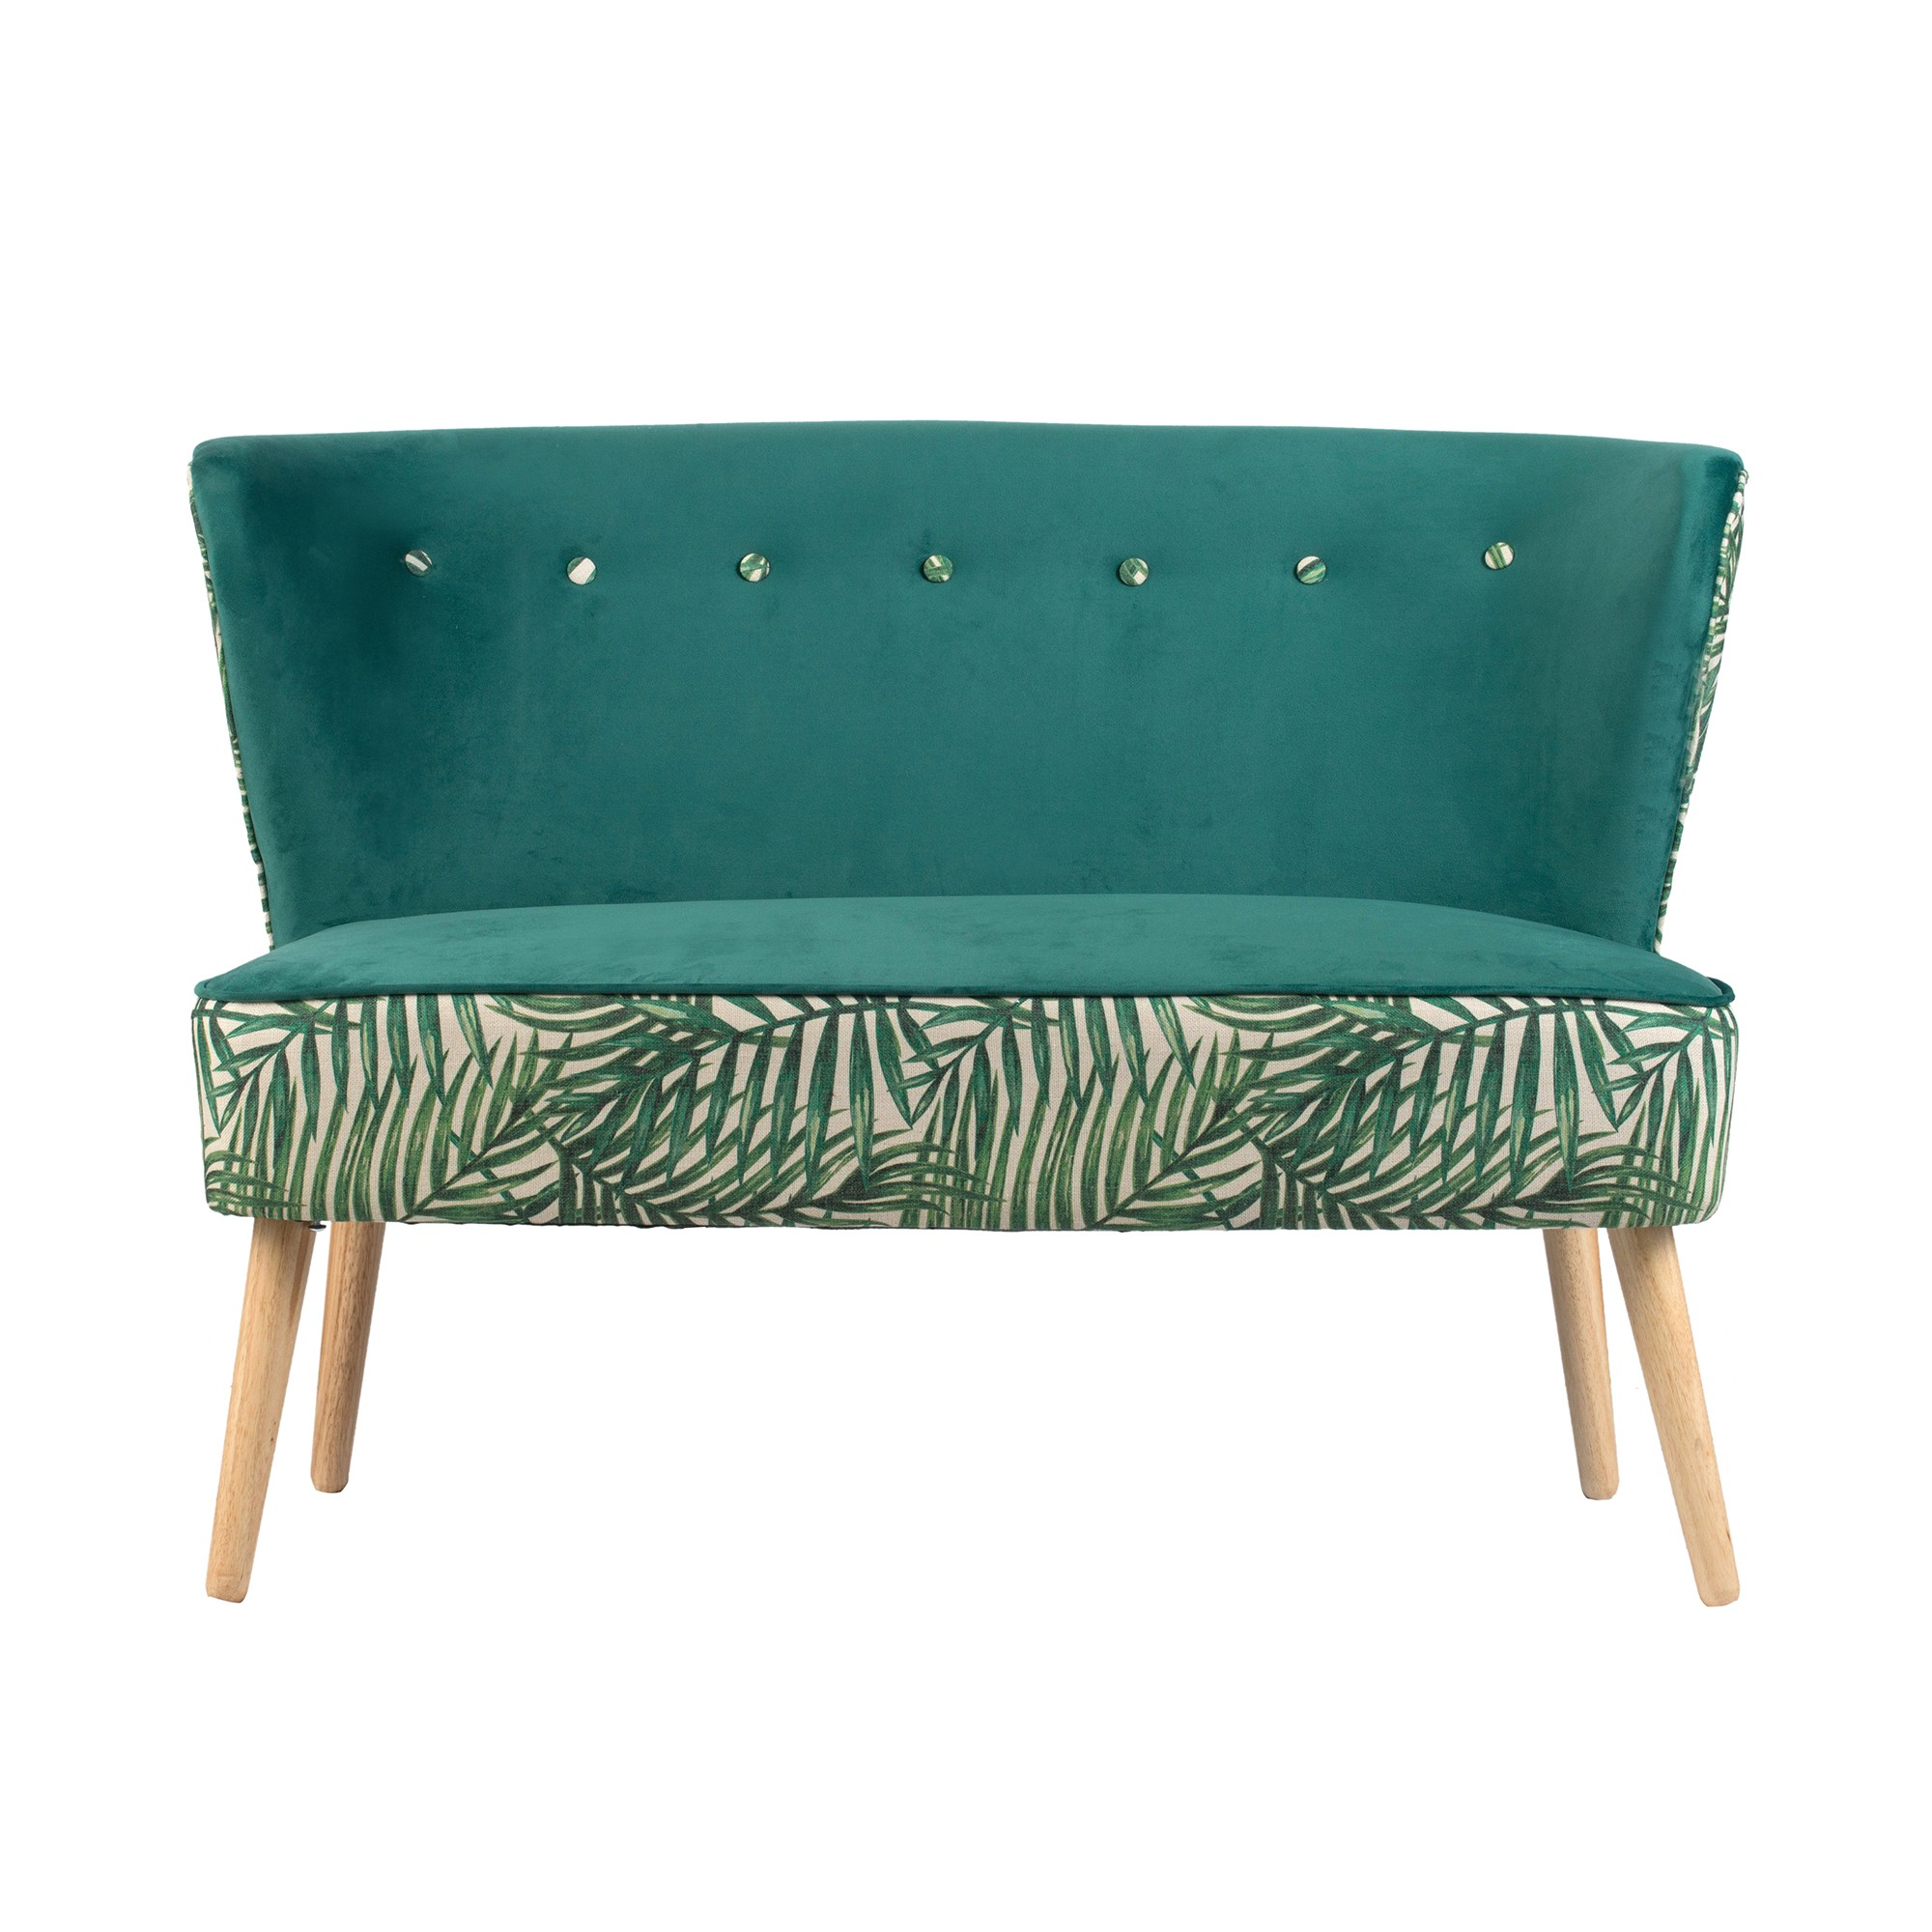 Green Fern Fabric Loveseat